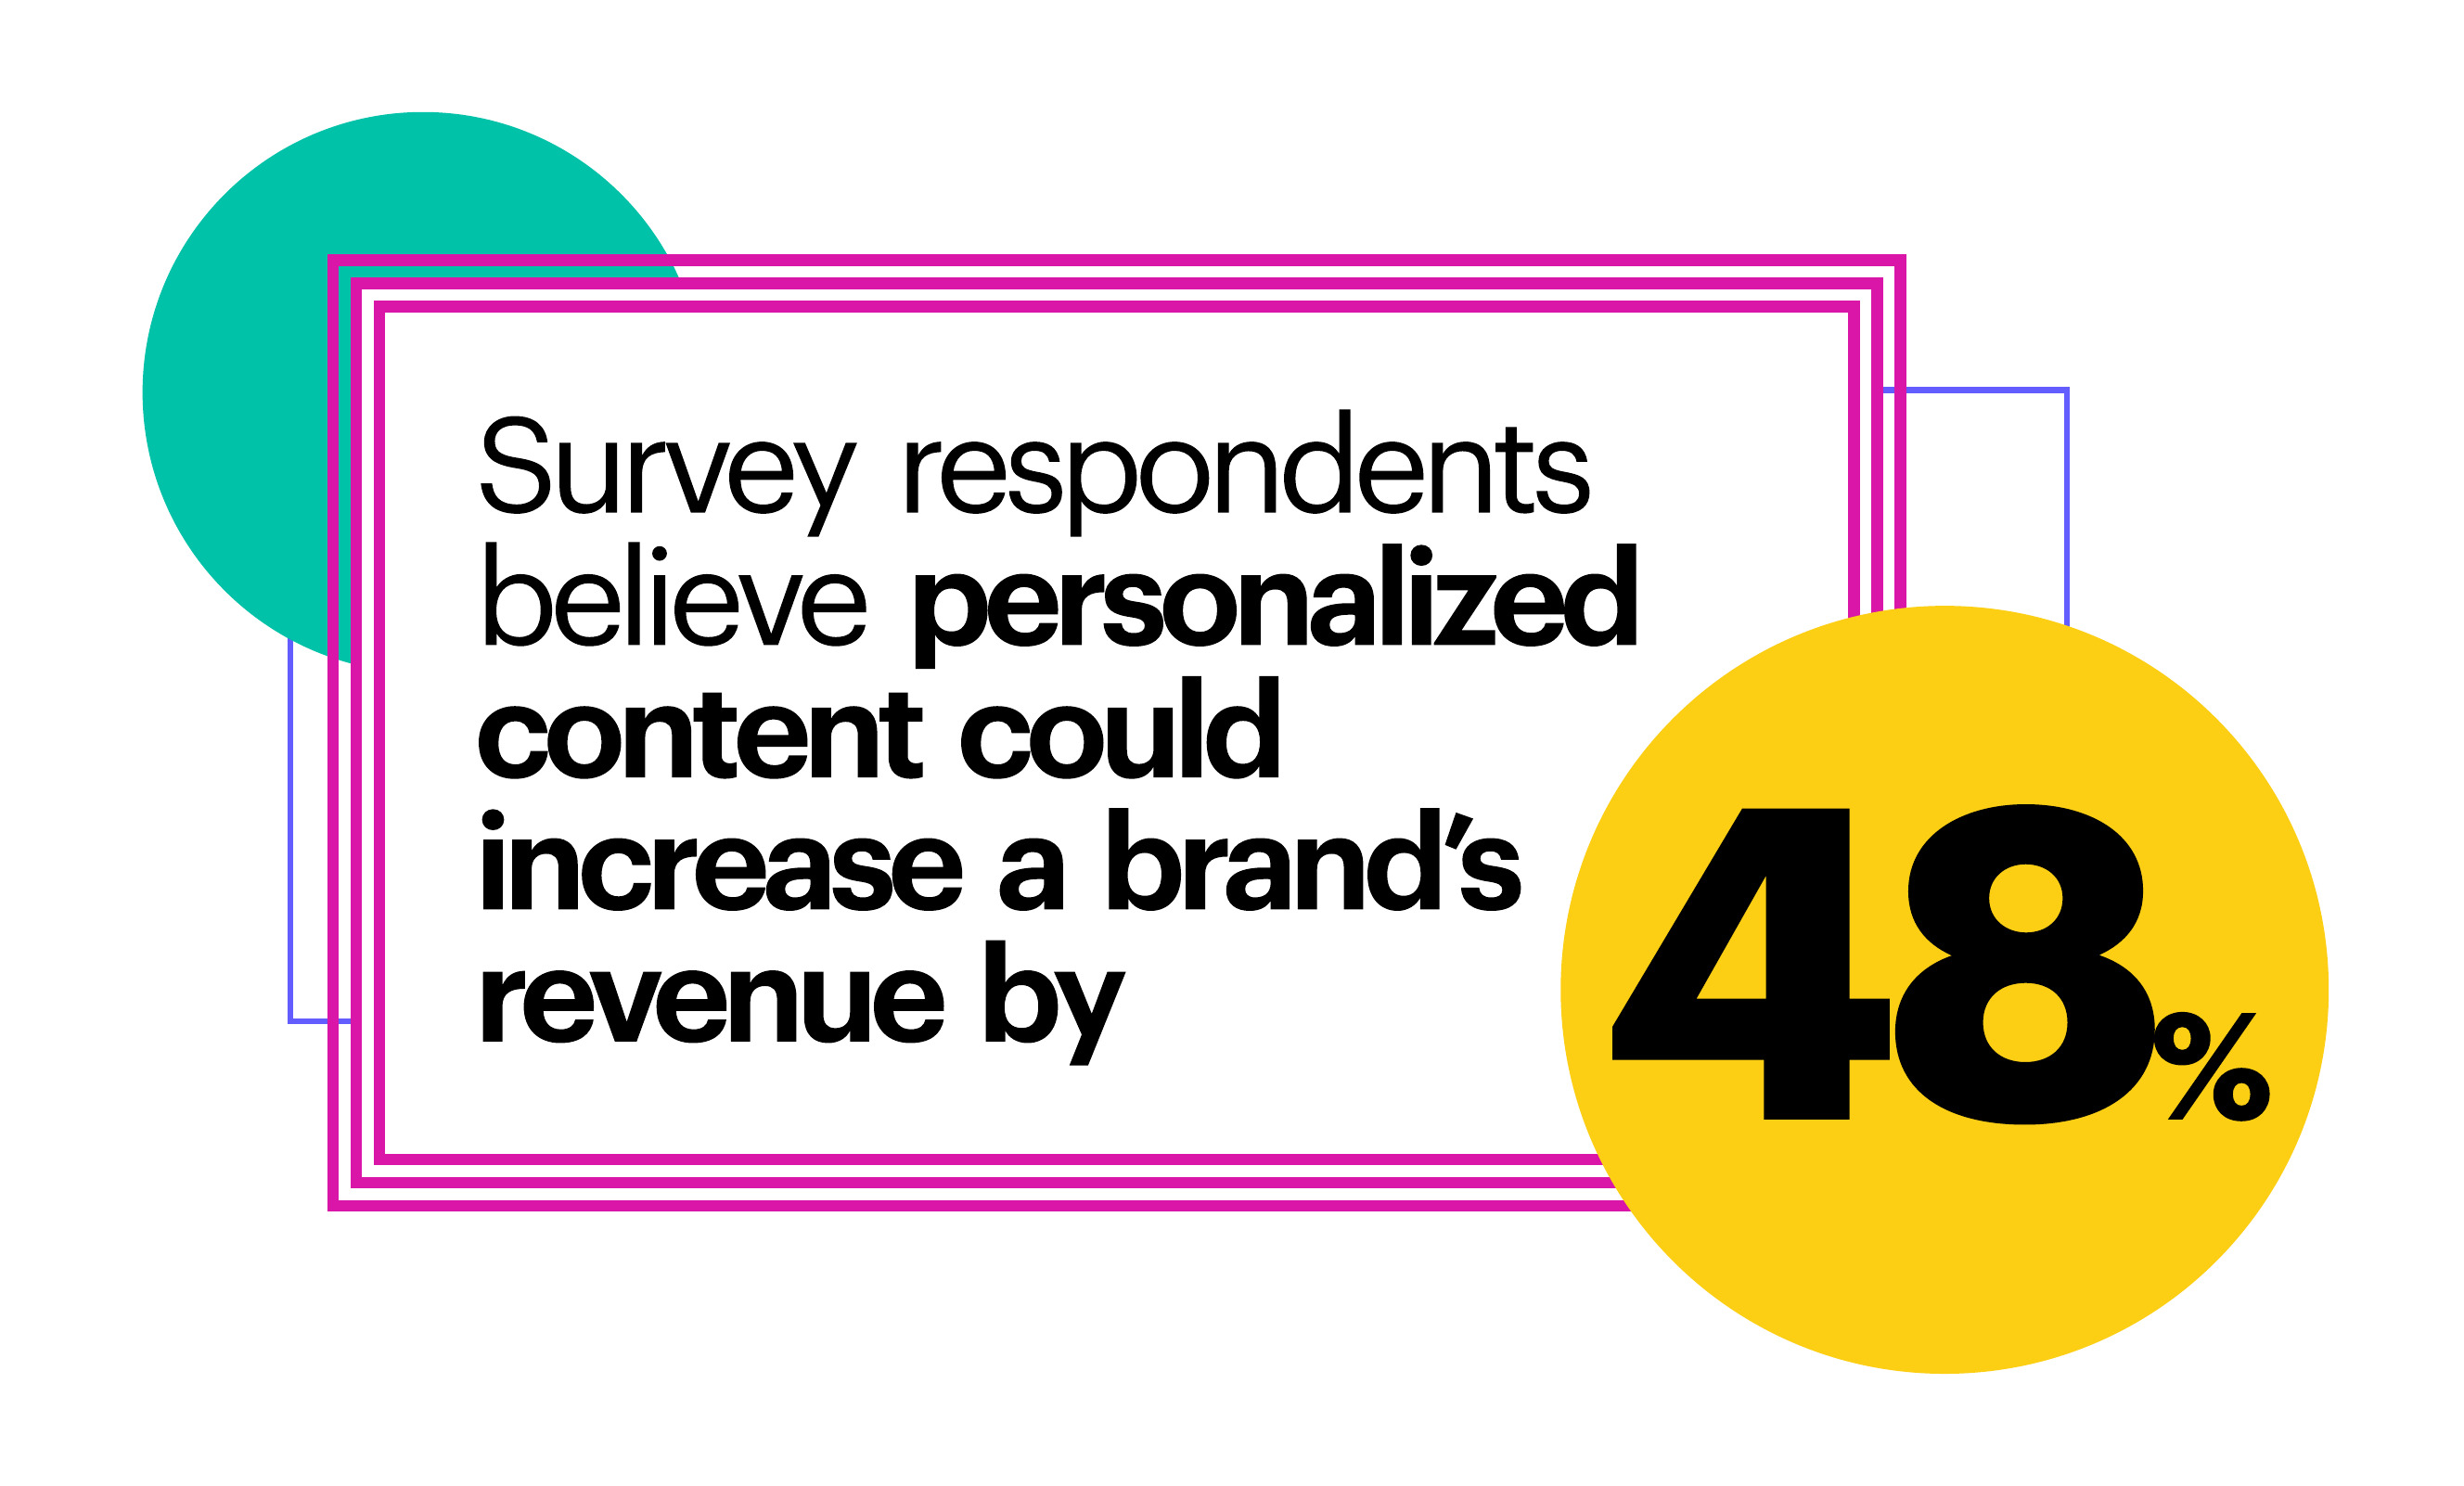 Survey respondents believe personalized content could increase a brand's revenue by 48%.